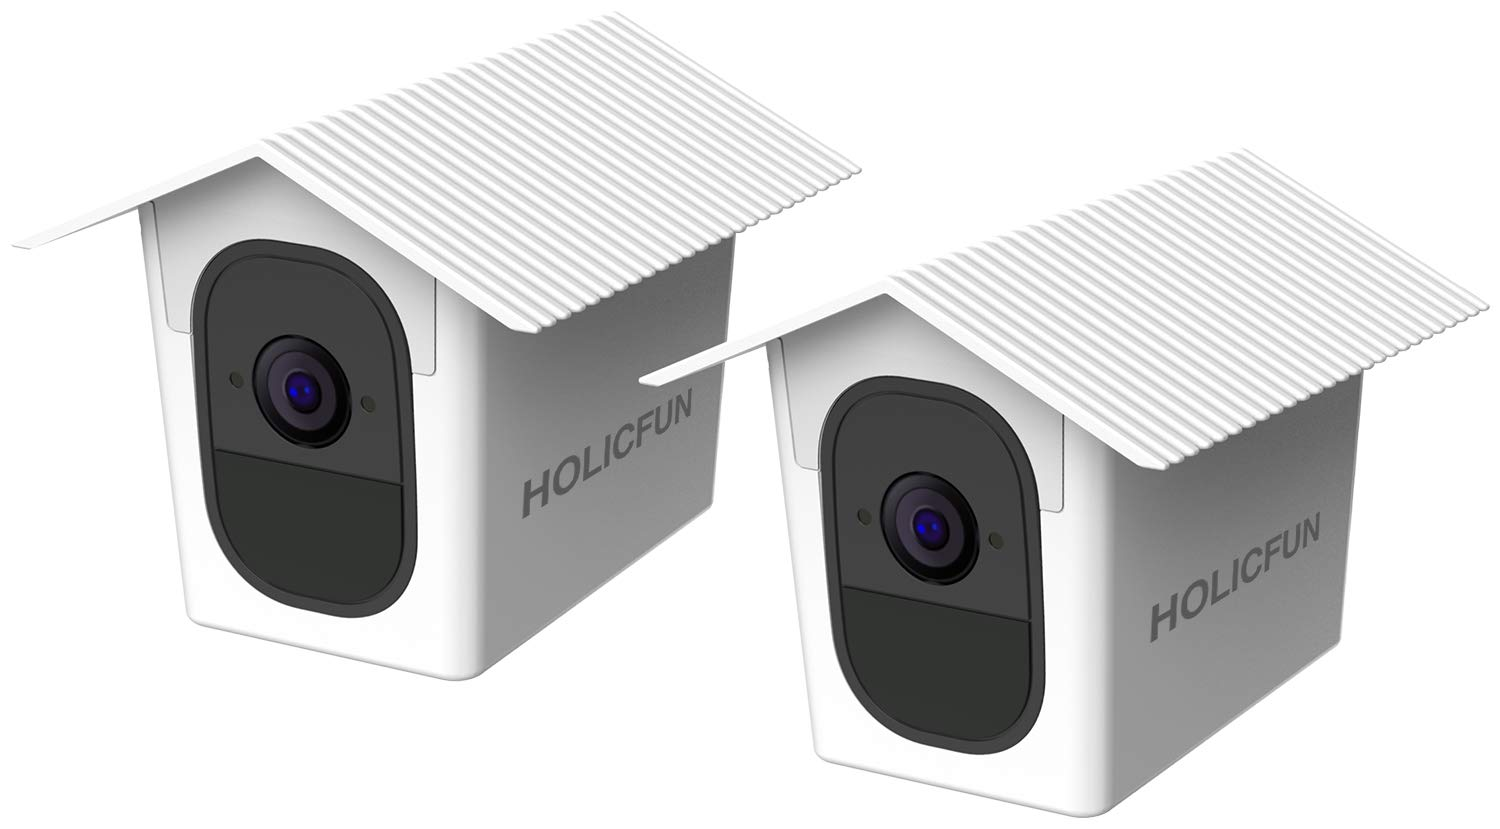 Holicfun Outdoor Weatherproof Housing Compatible with Arlo Pro and Arlo Pro 2 Camera (White, 2 Pack) by Holicfun